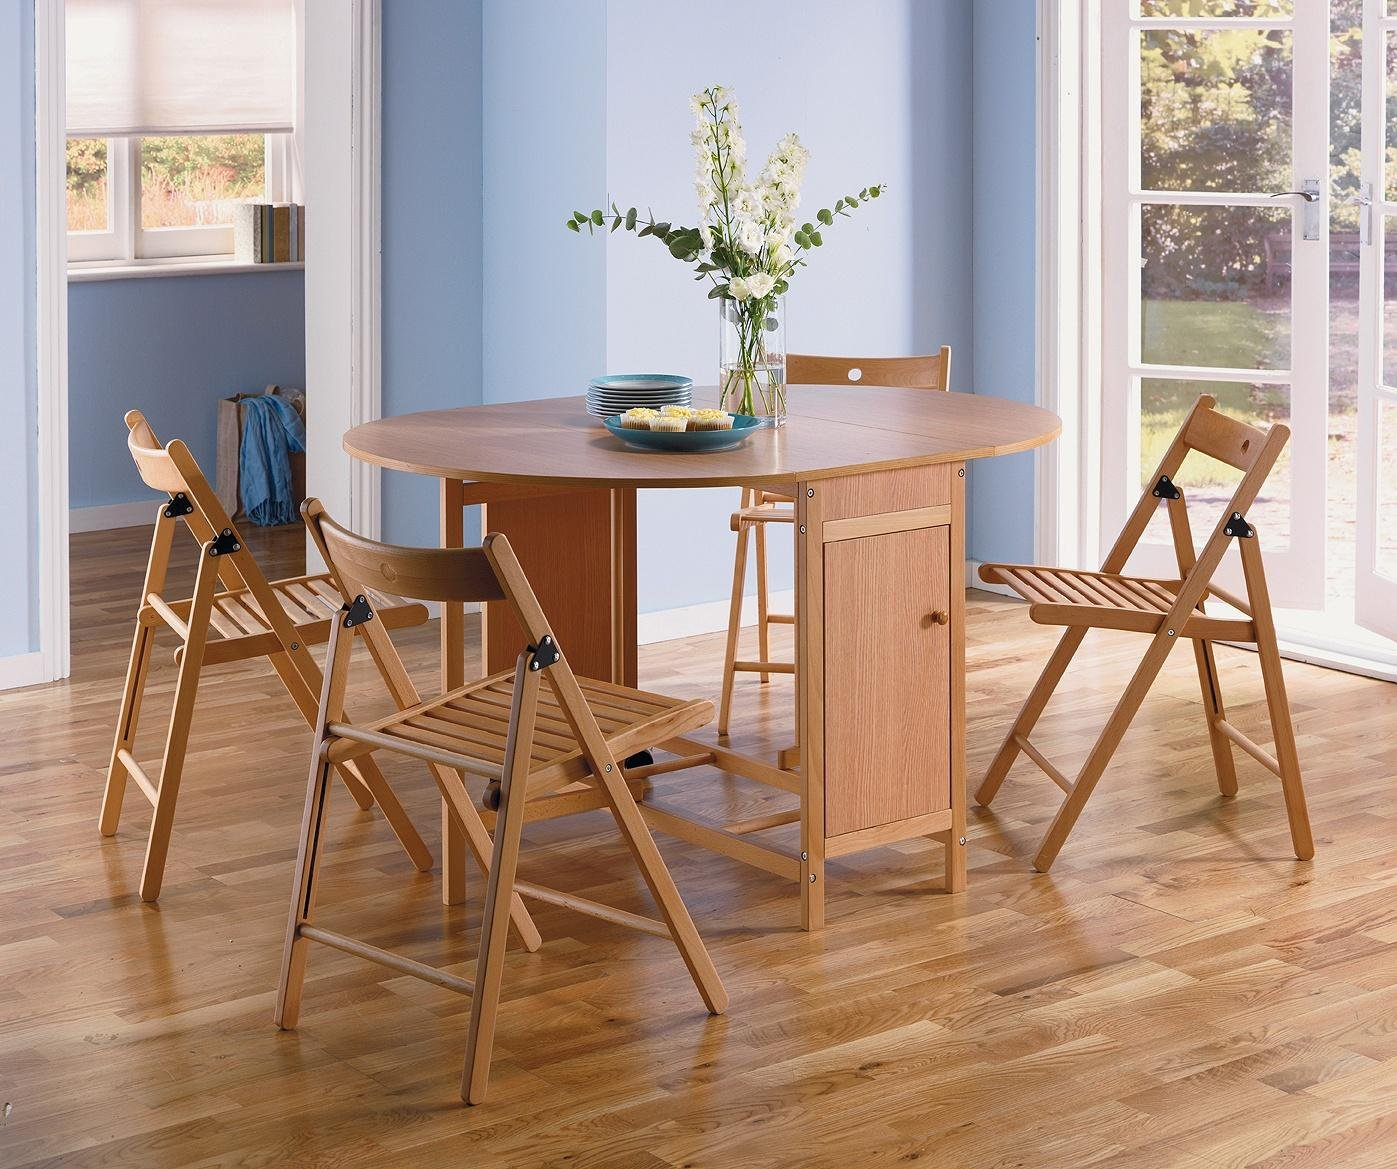 rubberwood butterfly table with 4 chairs phil and teds lobster high chair buy argos home extendable oval oak click to zoom